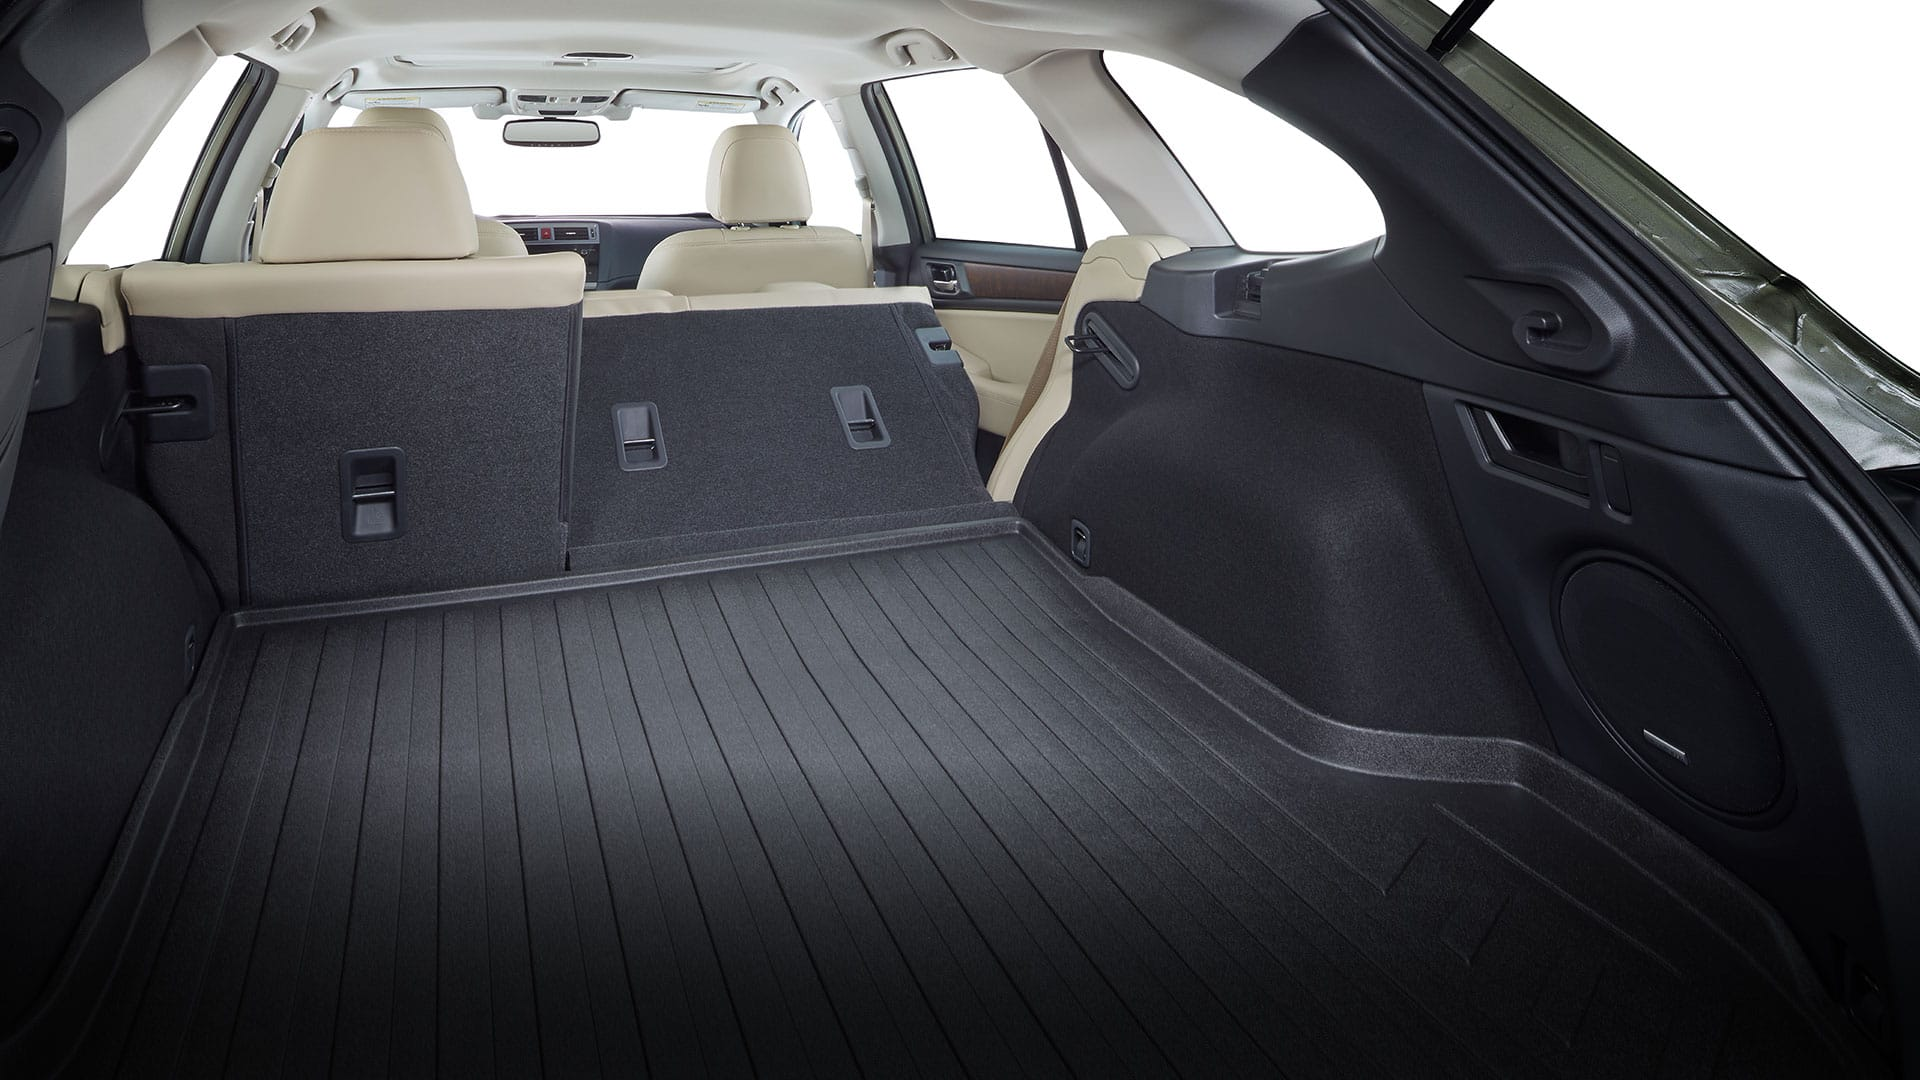 subaru outback cargo space 2017 subaru outback. Black Bedroom Furniture Sets. Home Design Ideas